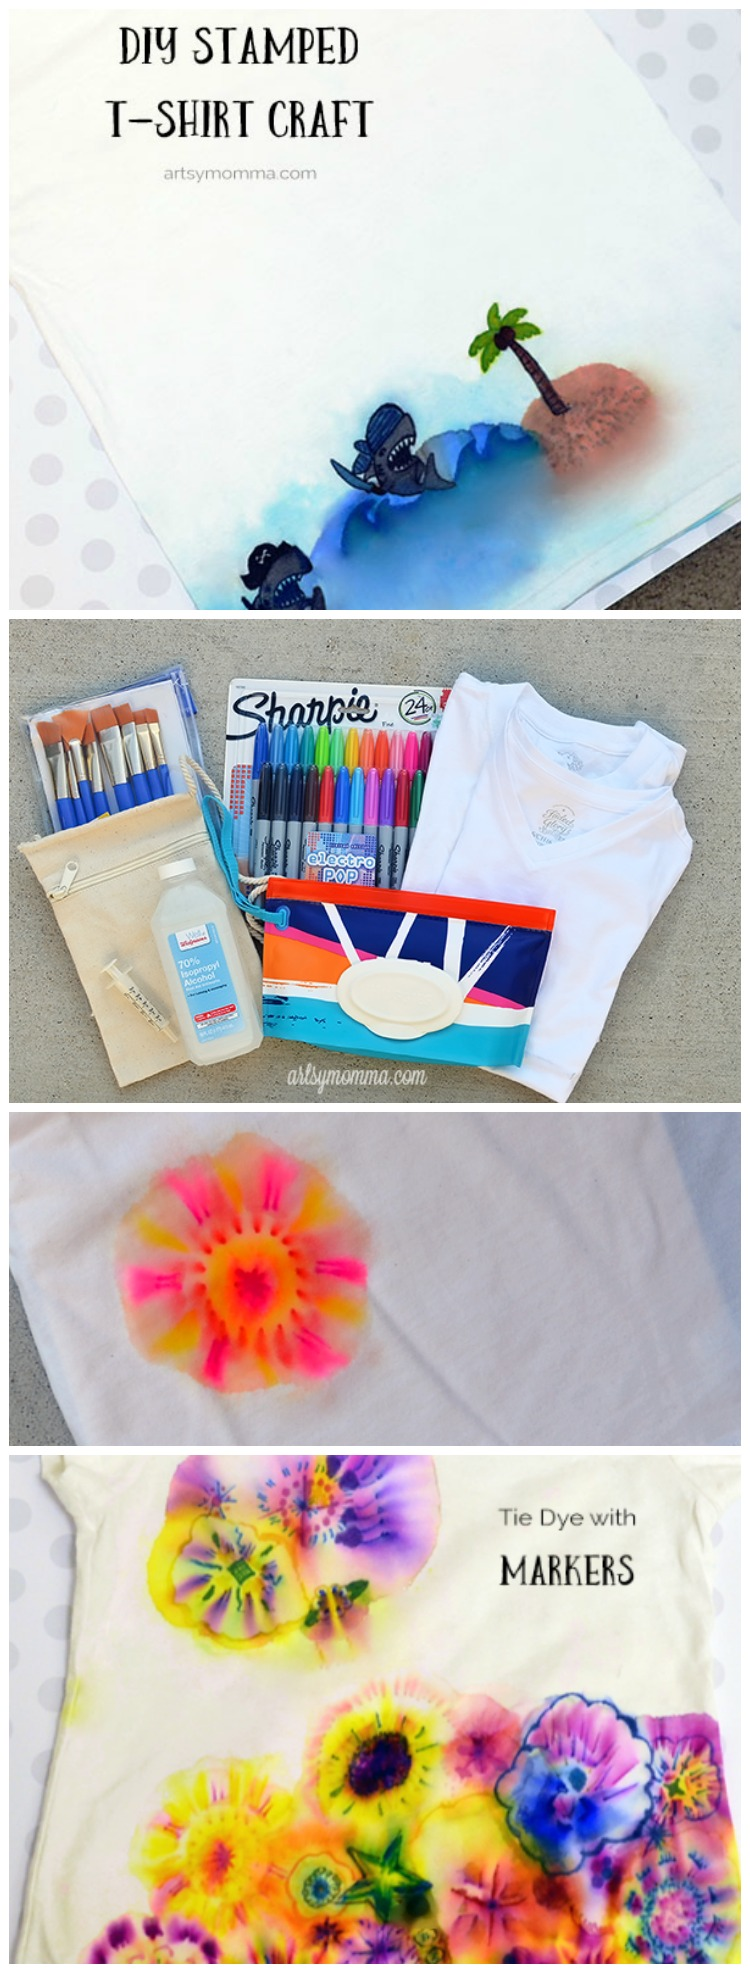 Using Stamps & Sharpies to Design T-shirt with Kids